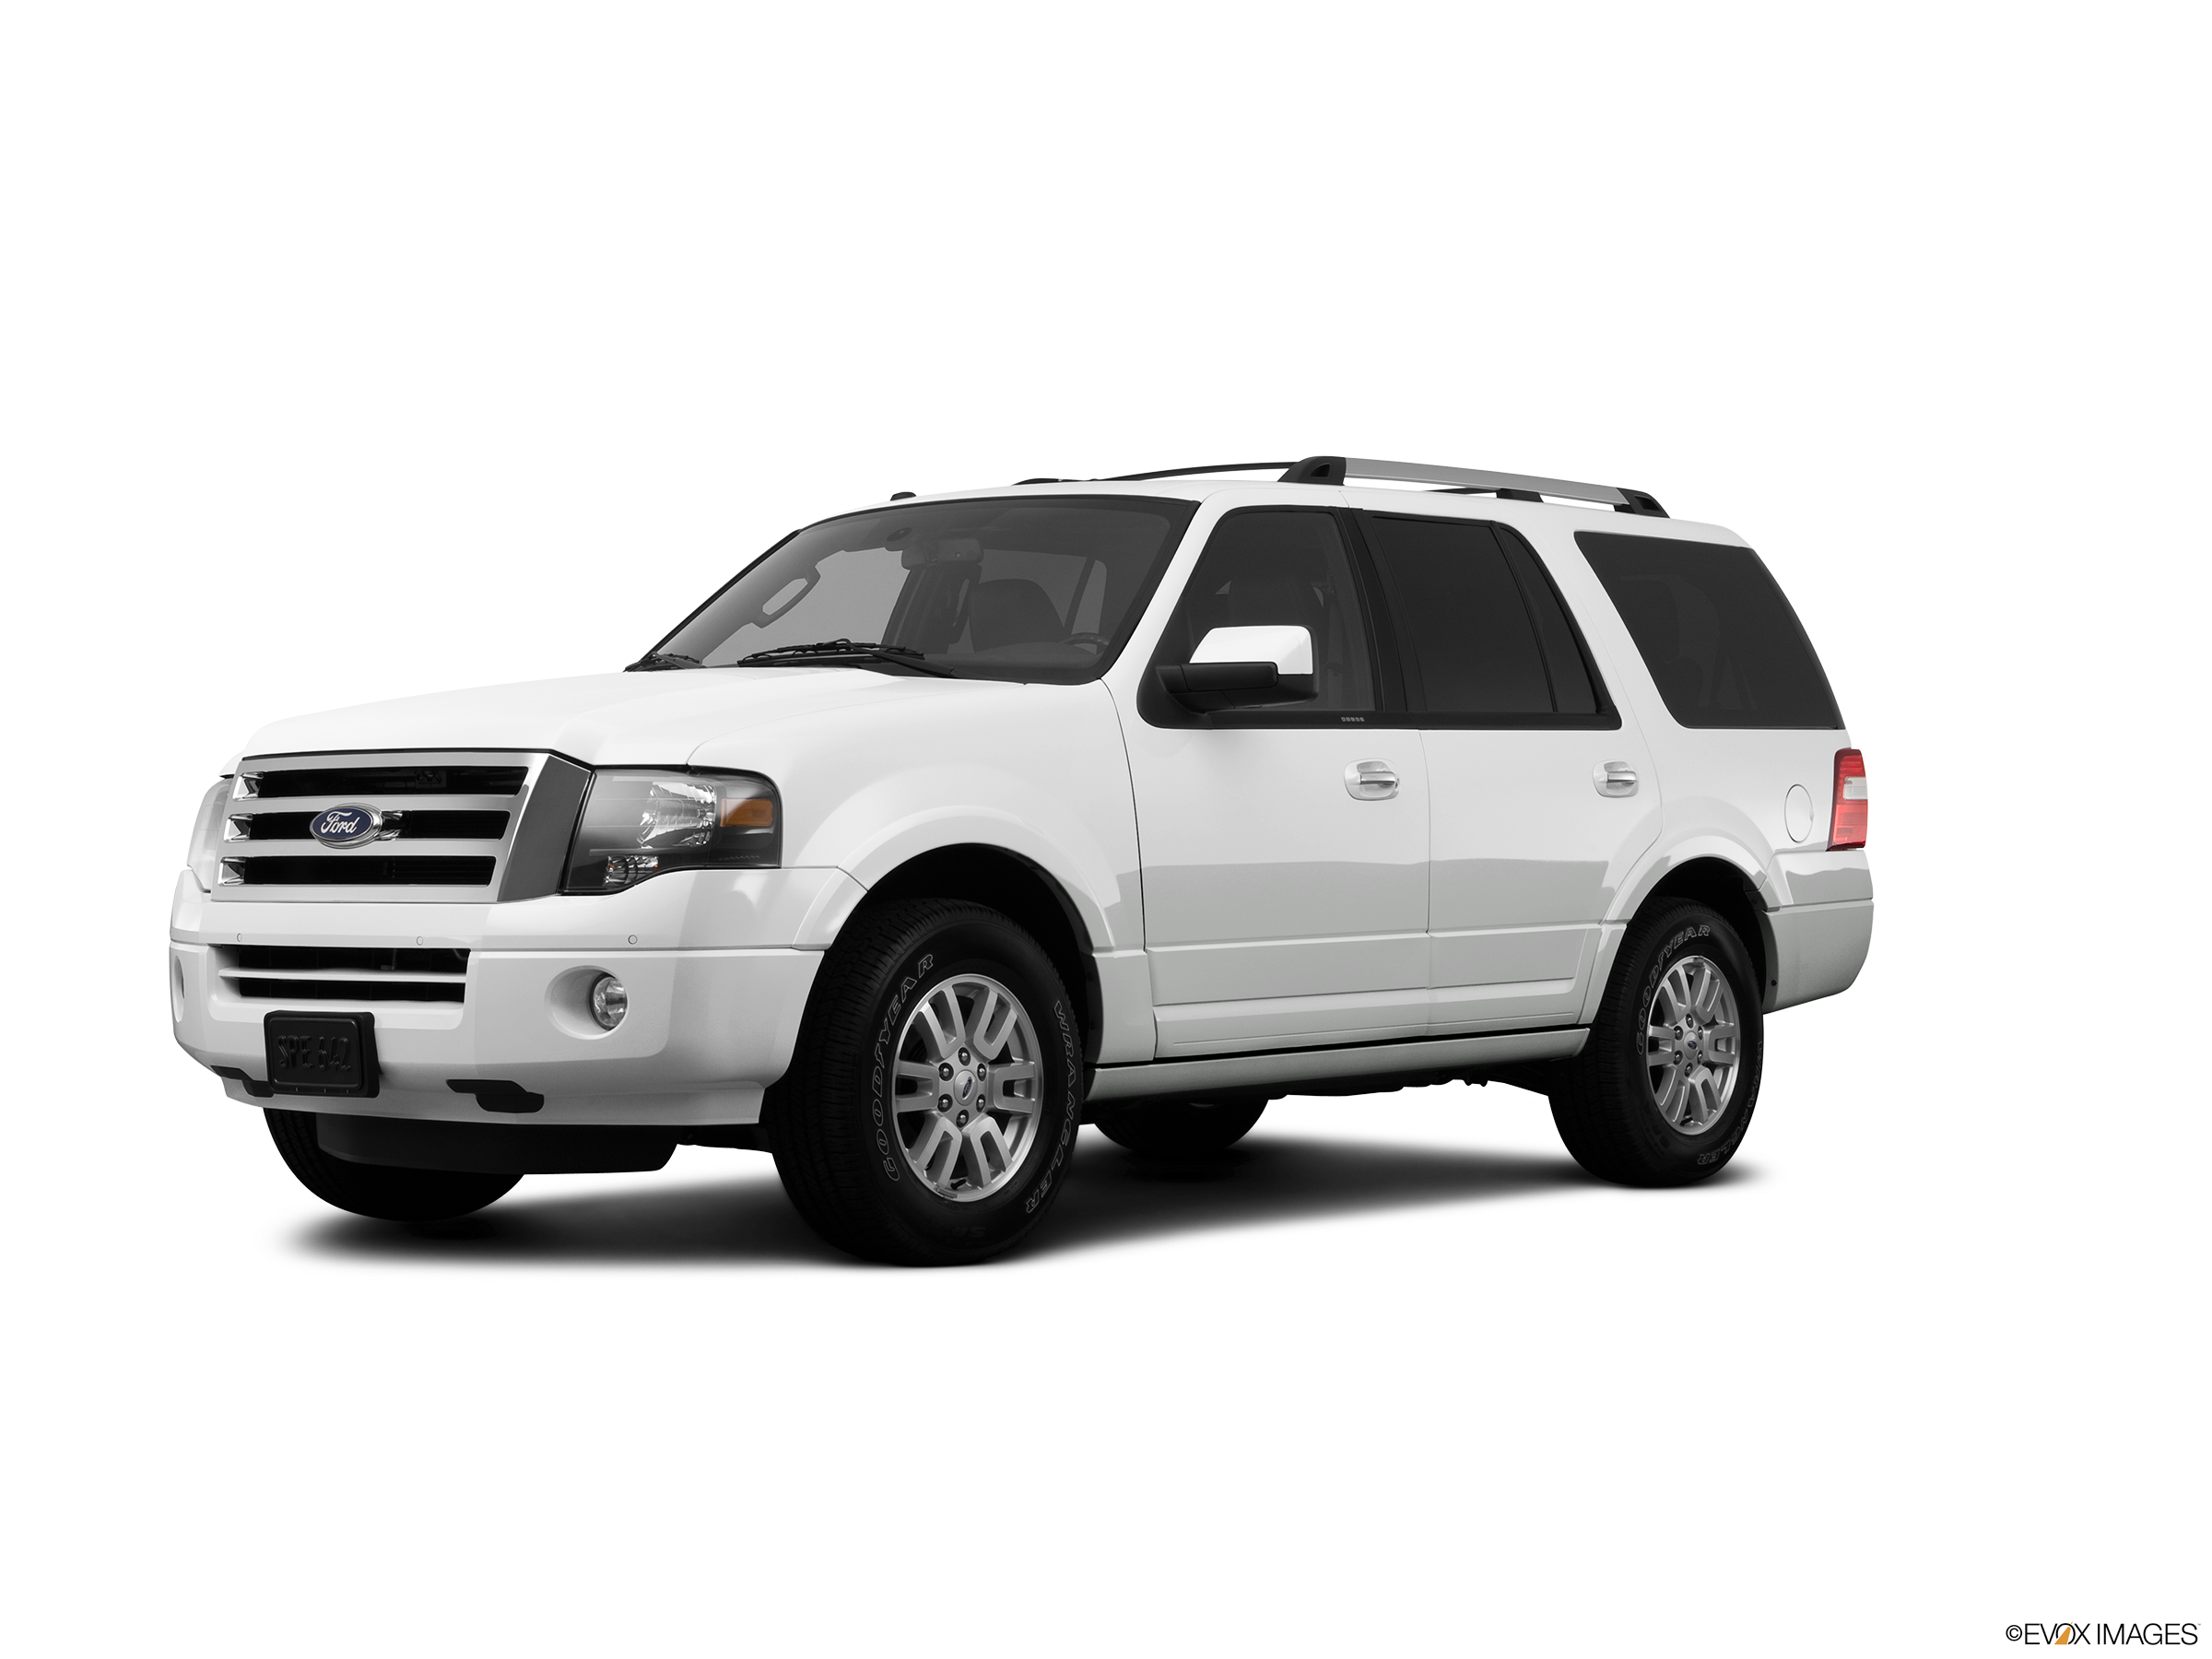 2012 Ford Expedition Values Cars For Sale Kelley Blue Book